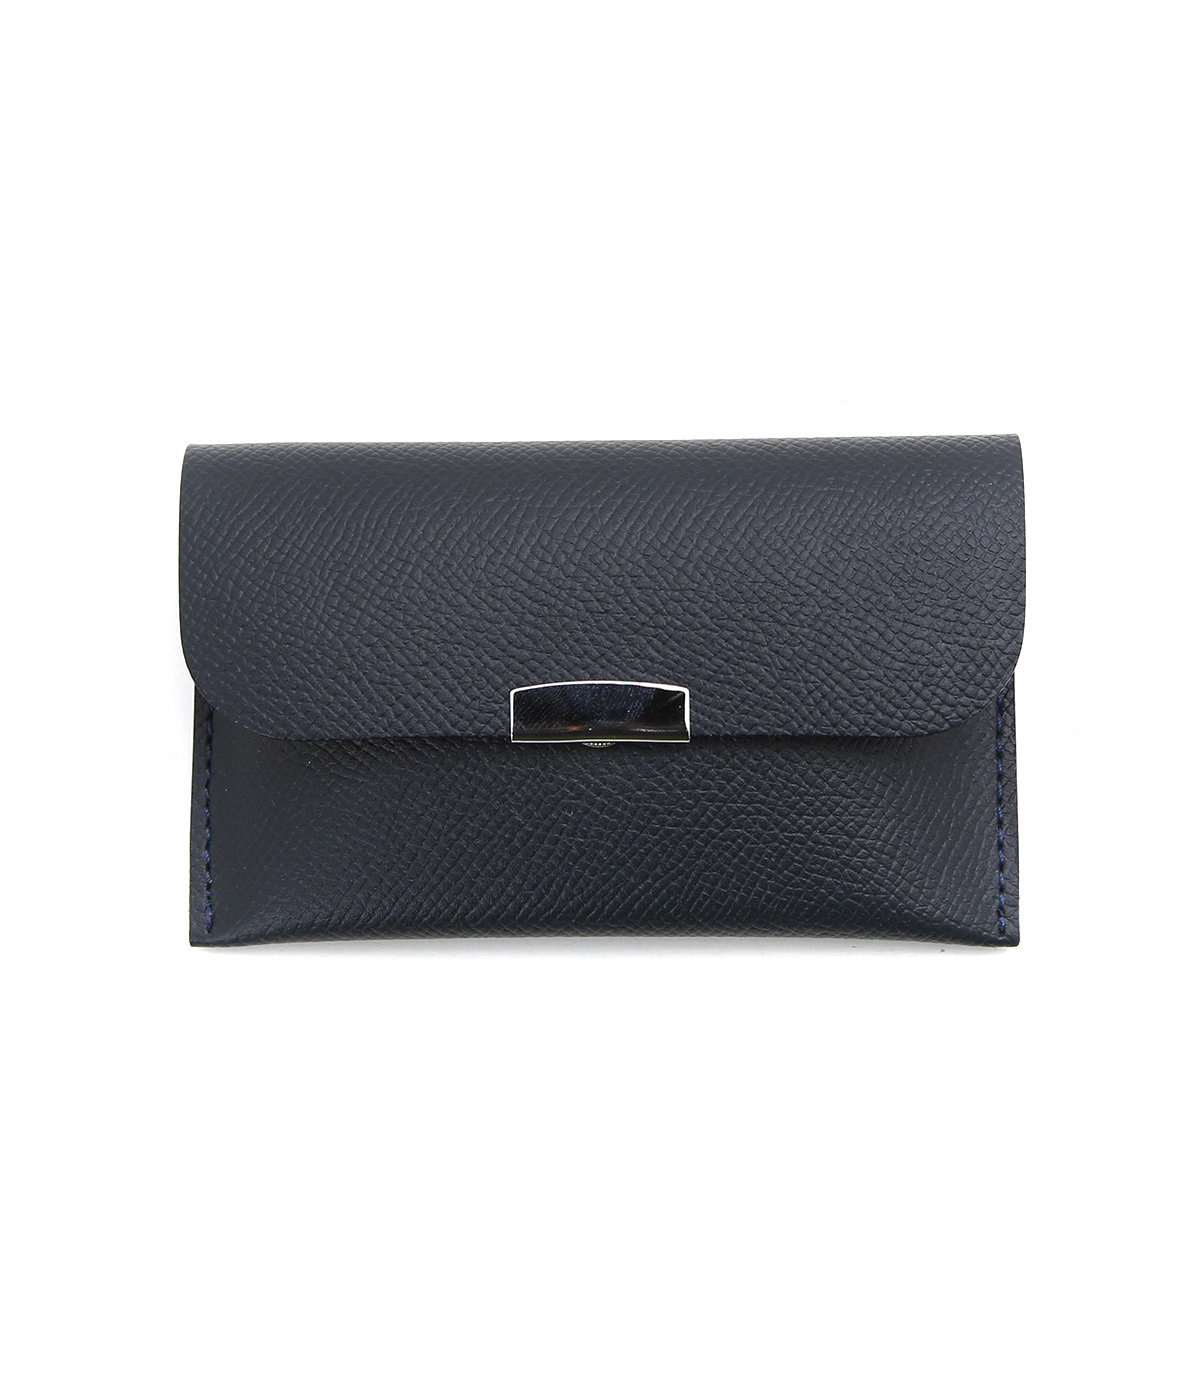 CARD CASE - Calf leather